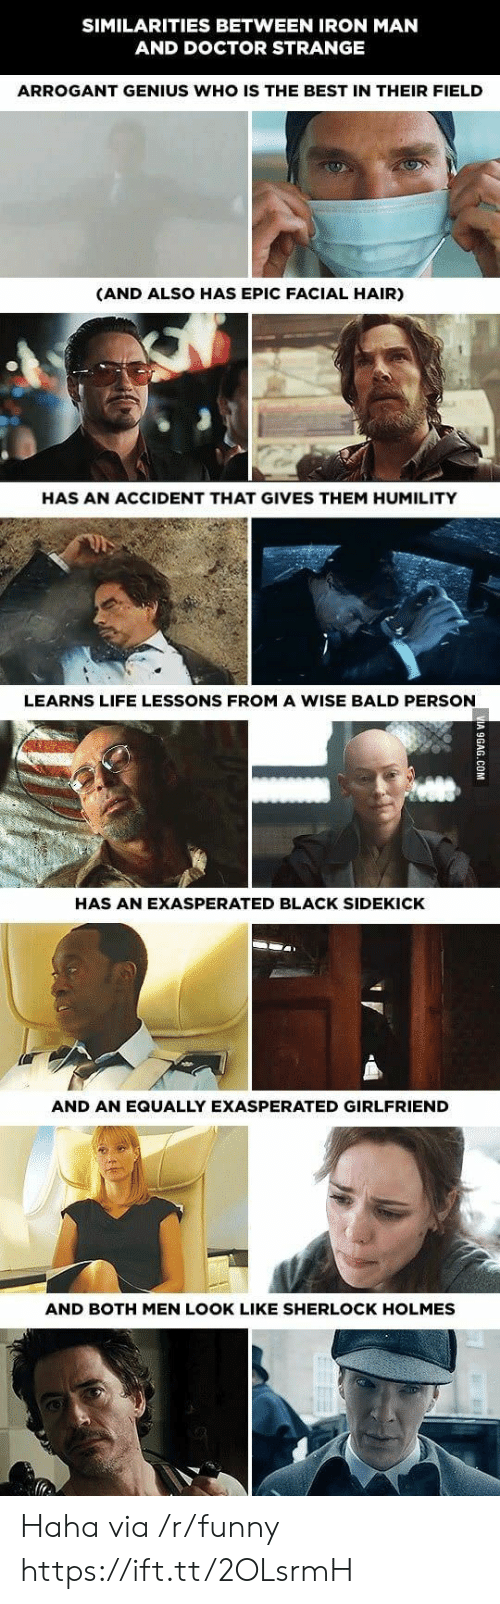 Sherlock Holmes: SIMILARITIES BETWEEN IRON MAN  AND DOCTOR STRANGE  ARROGANT GENIUS WHO IS THE BEST IN THEIR FIELD  (AND ALSO HAS EPIC FACIAL HAIR)  HAS AN ACCIDENT THAT GIVES THEM HUMILITY  LEARNS LIFE LESSONS FROM A WISE BALD PERSON  HAS AN EXASPERATED BLACK SIDEKICK  AND AN EQUALLY EXASPERATED GIRLFRIEND  AND BOTH MEN LOOK LIKE SHERLOCK HOLMES Haha via /r/funny https://ift.tt/2OLsrmH